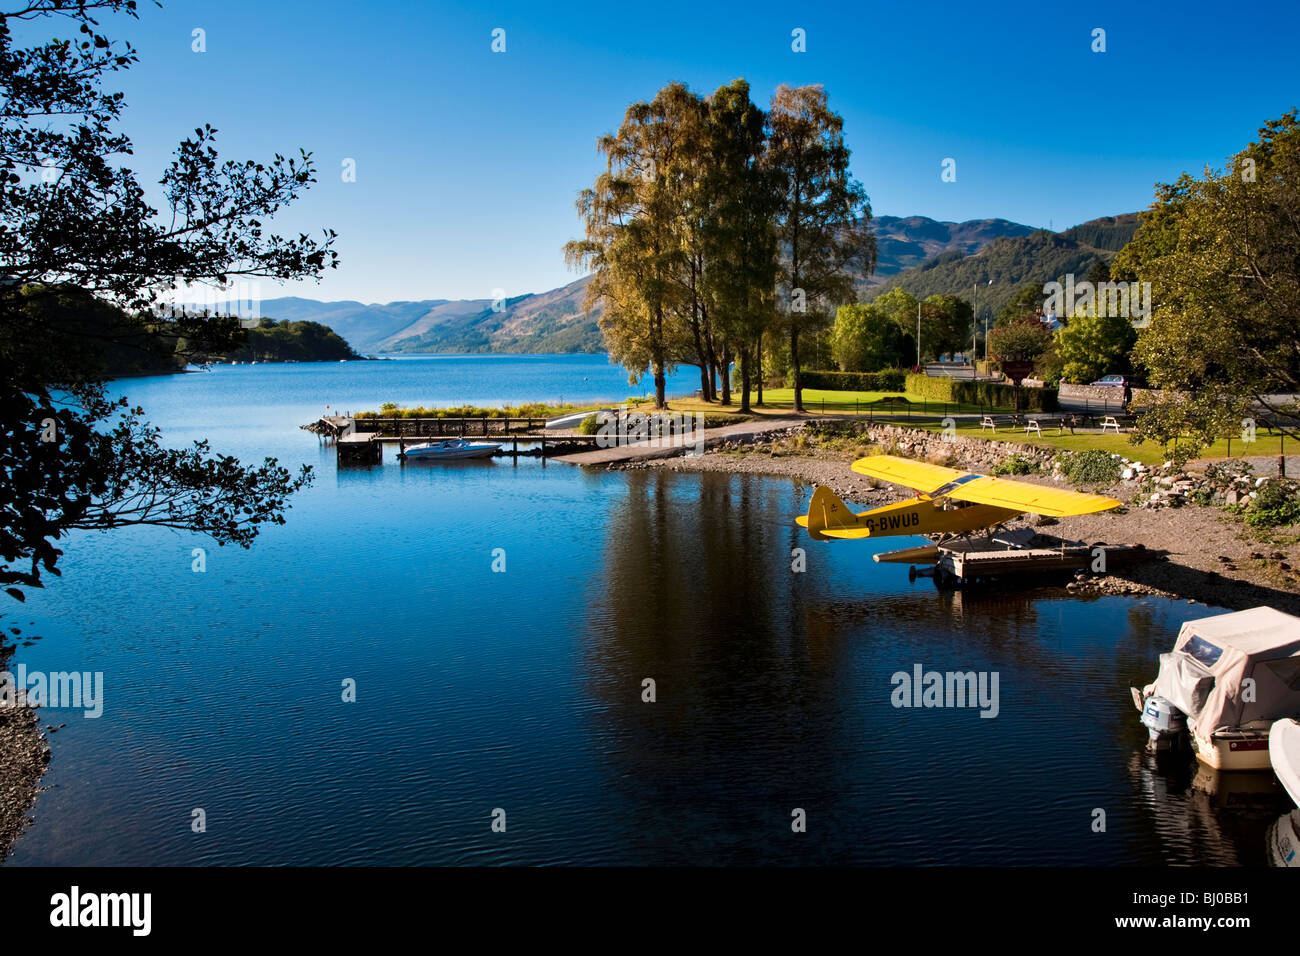 Views of Lake with Seaplane at St Fillans, Loch Earn, Scotland. - Stock Image